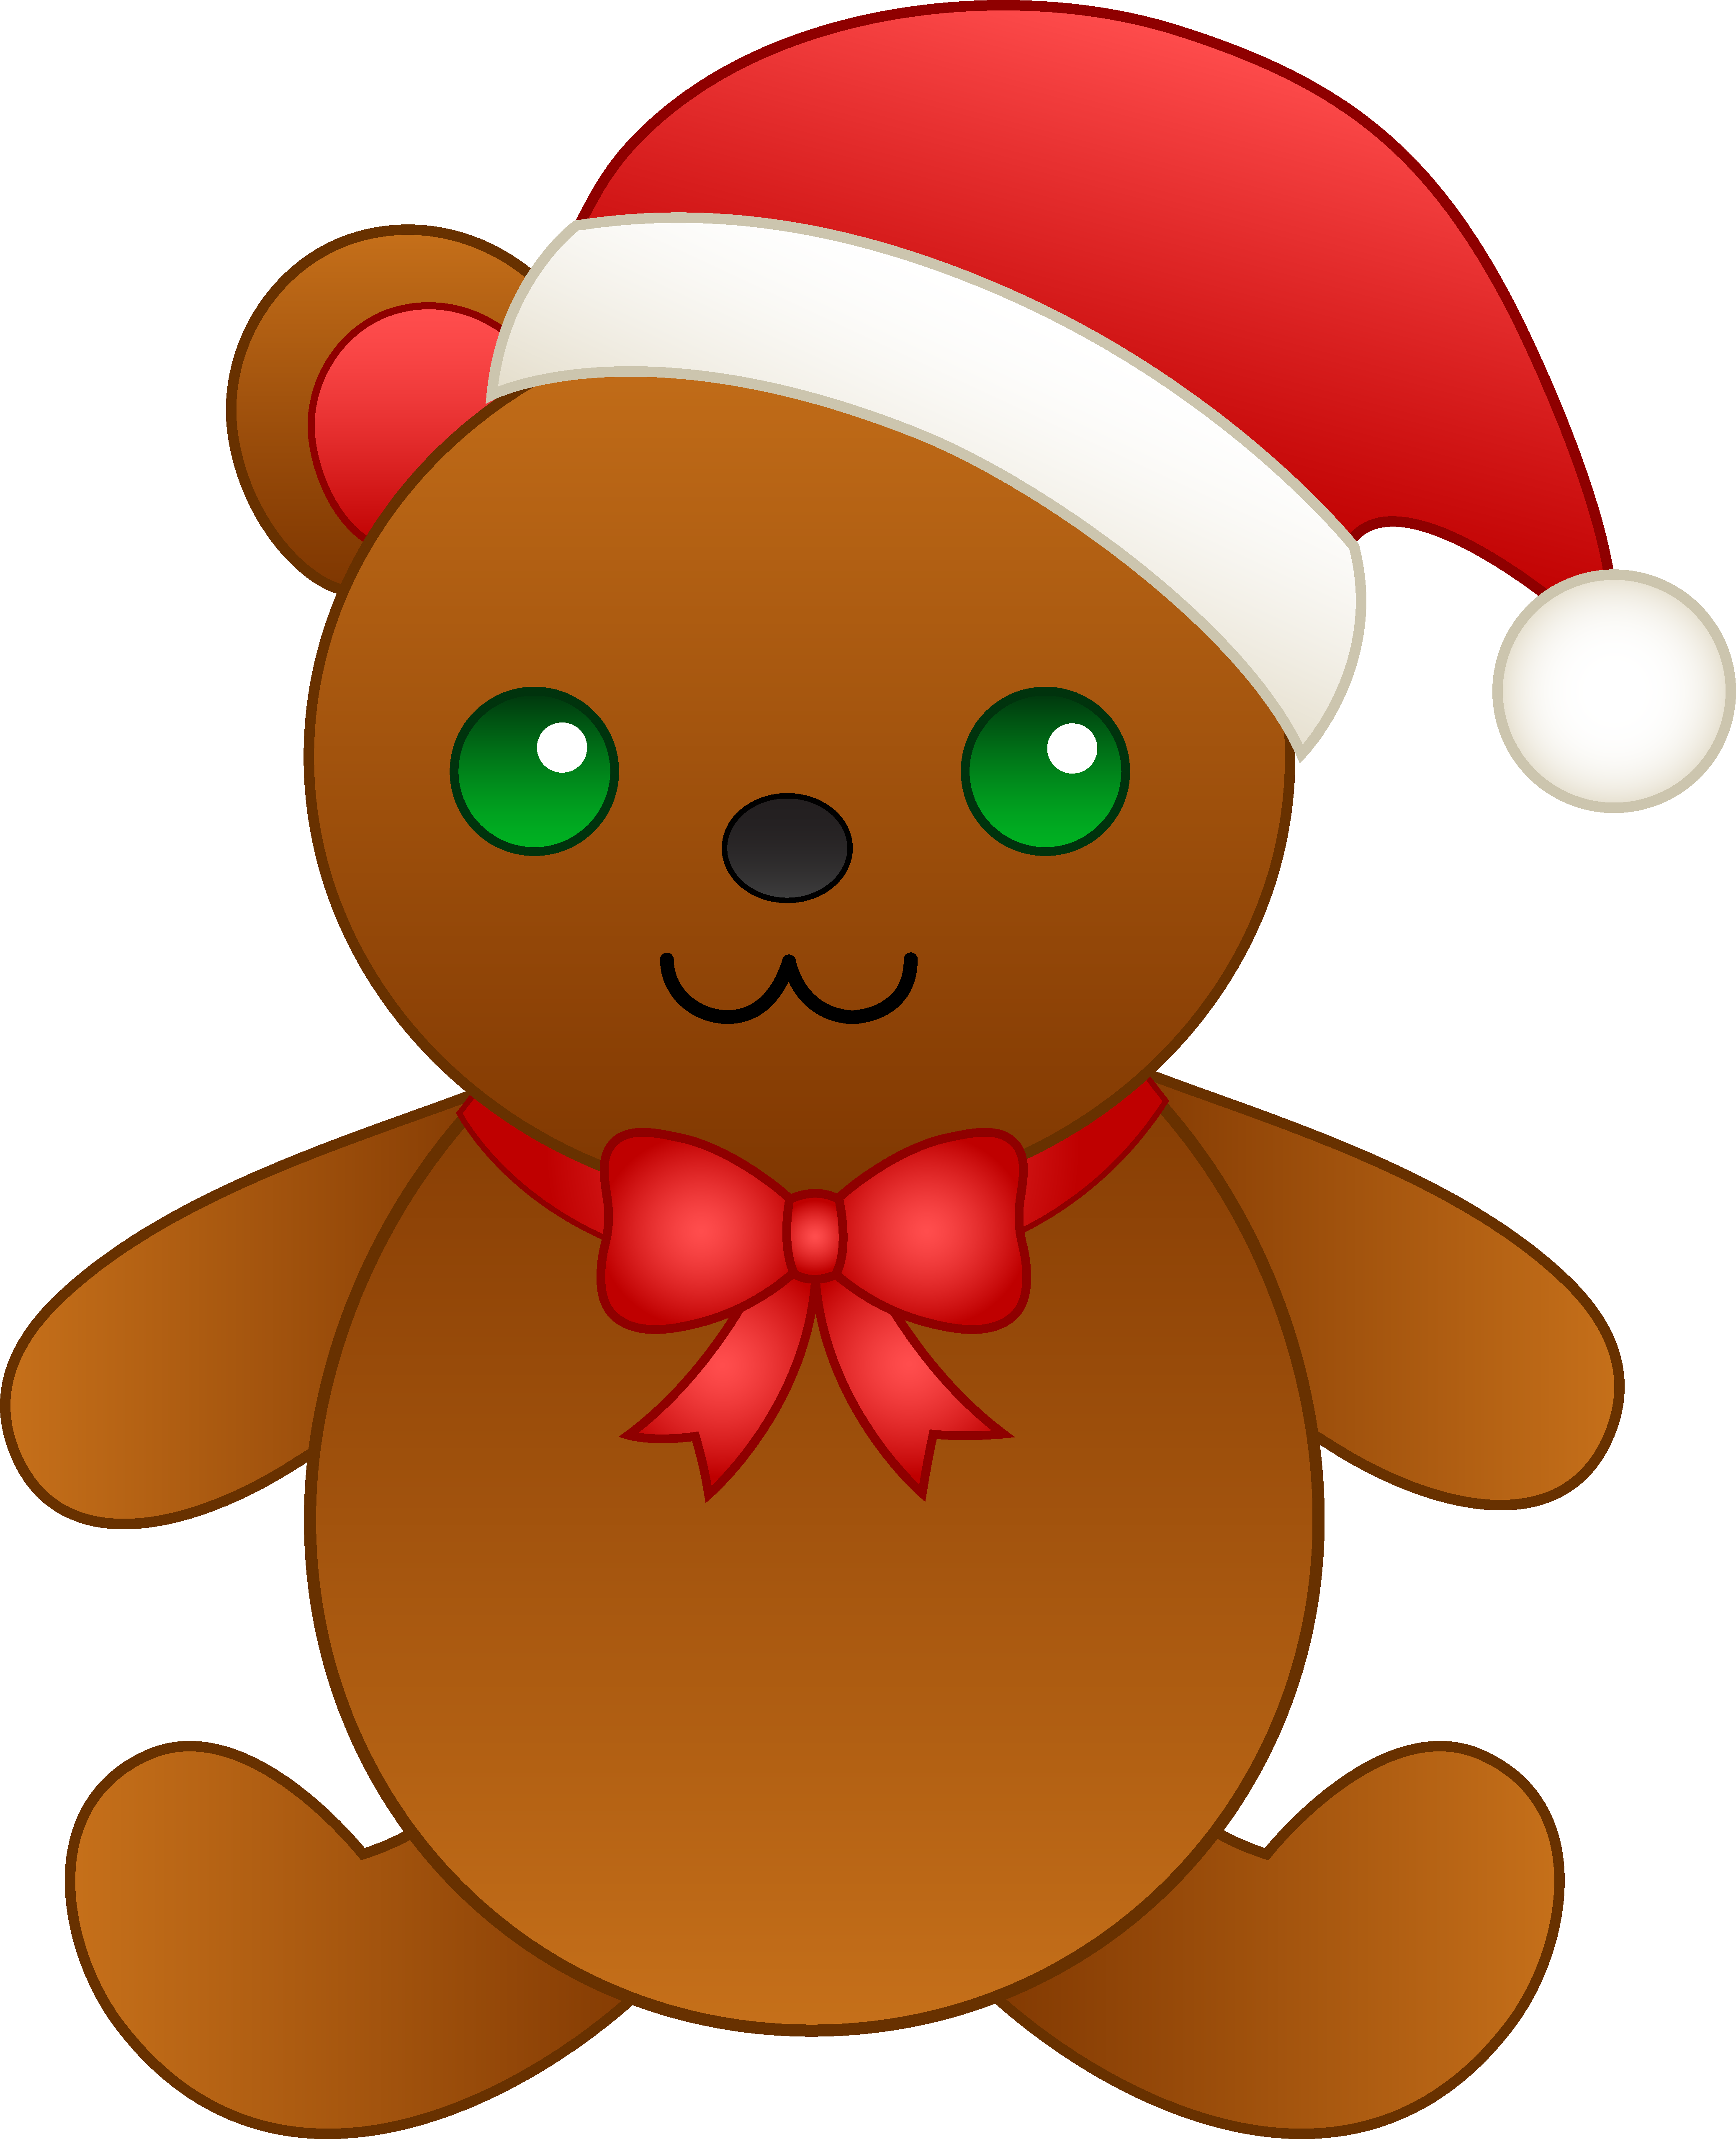 Numbers 1 10 clipart png royalty free download Numbers 1 10 Clipart Panda Free Images Christmas Animals ... png royalty free download